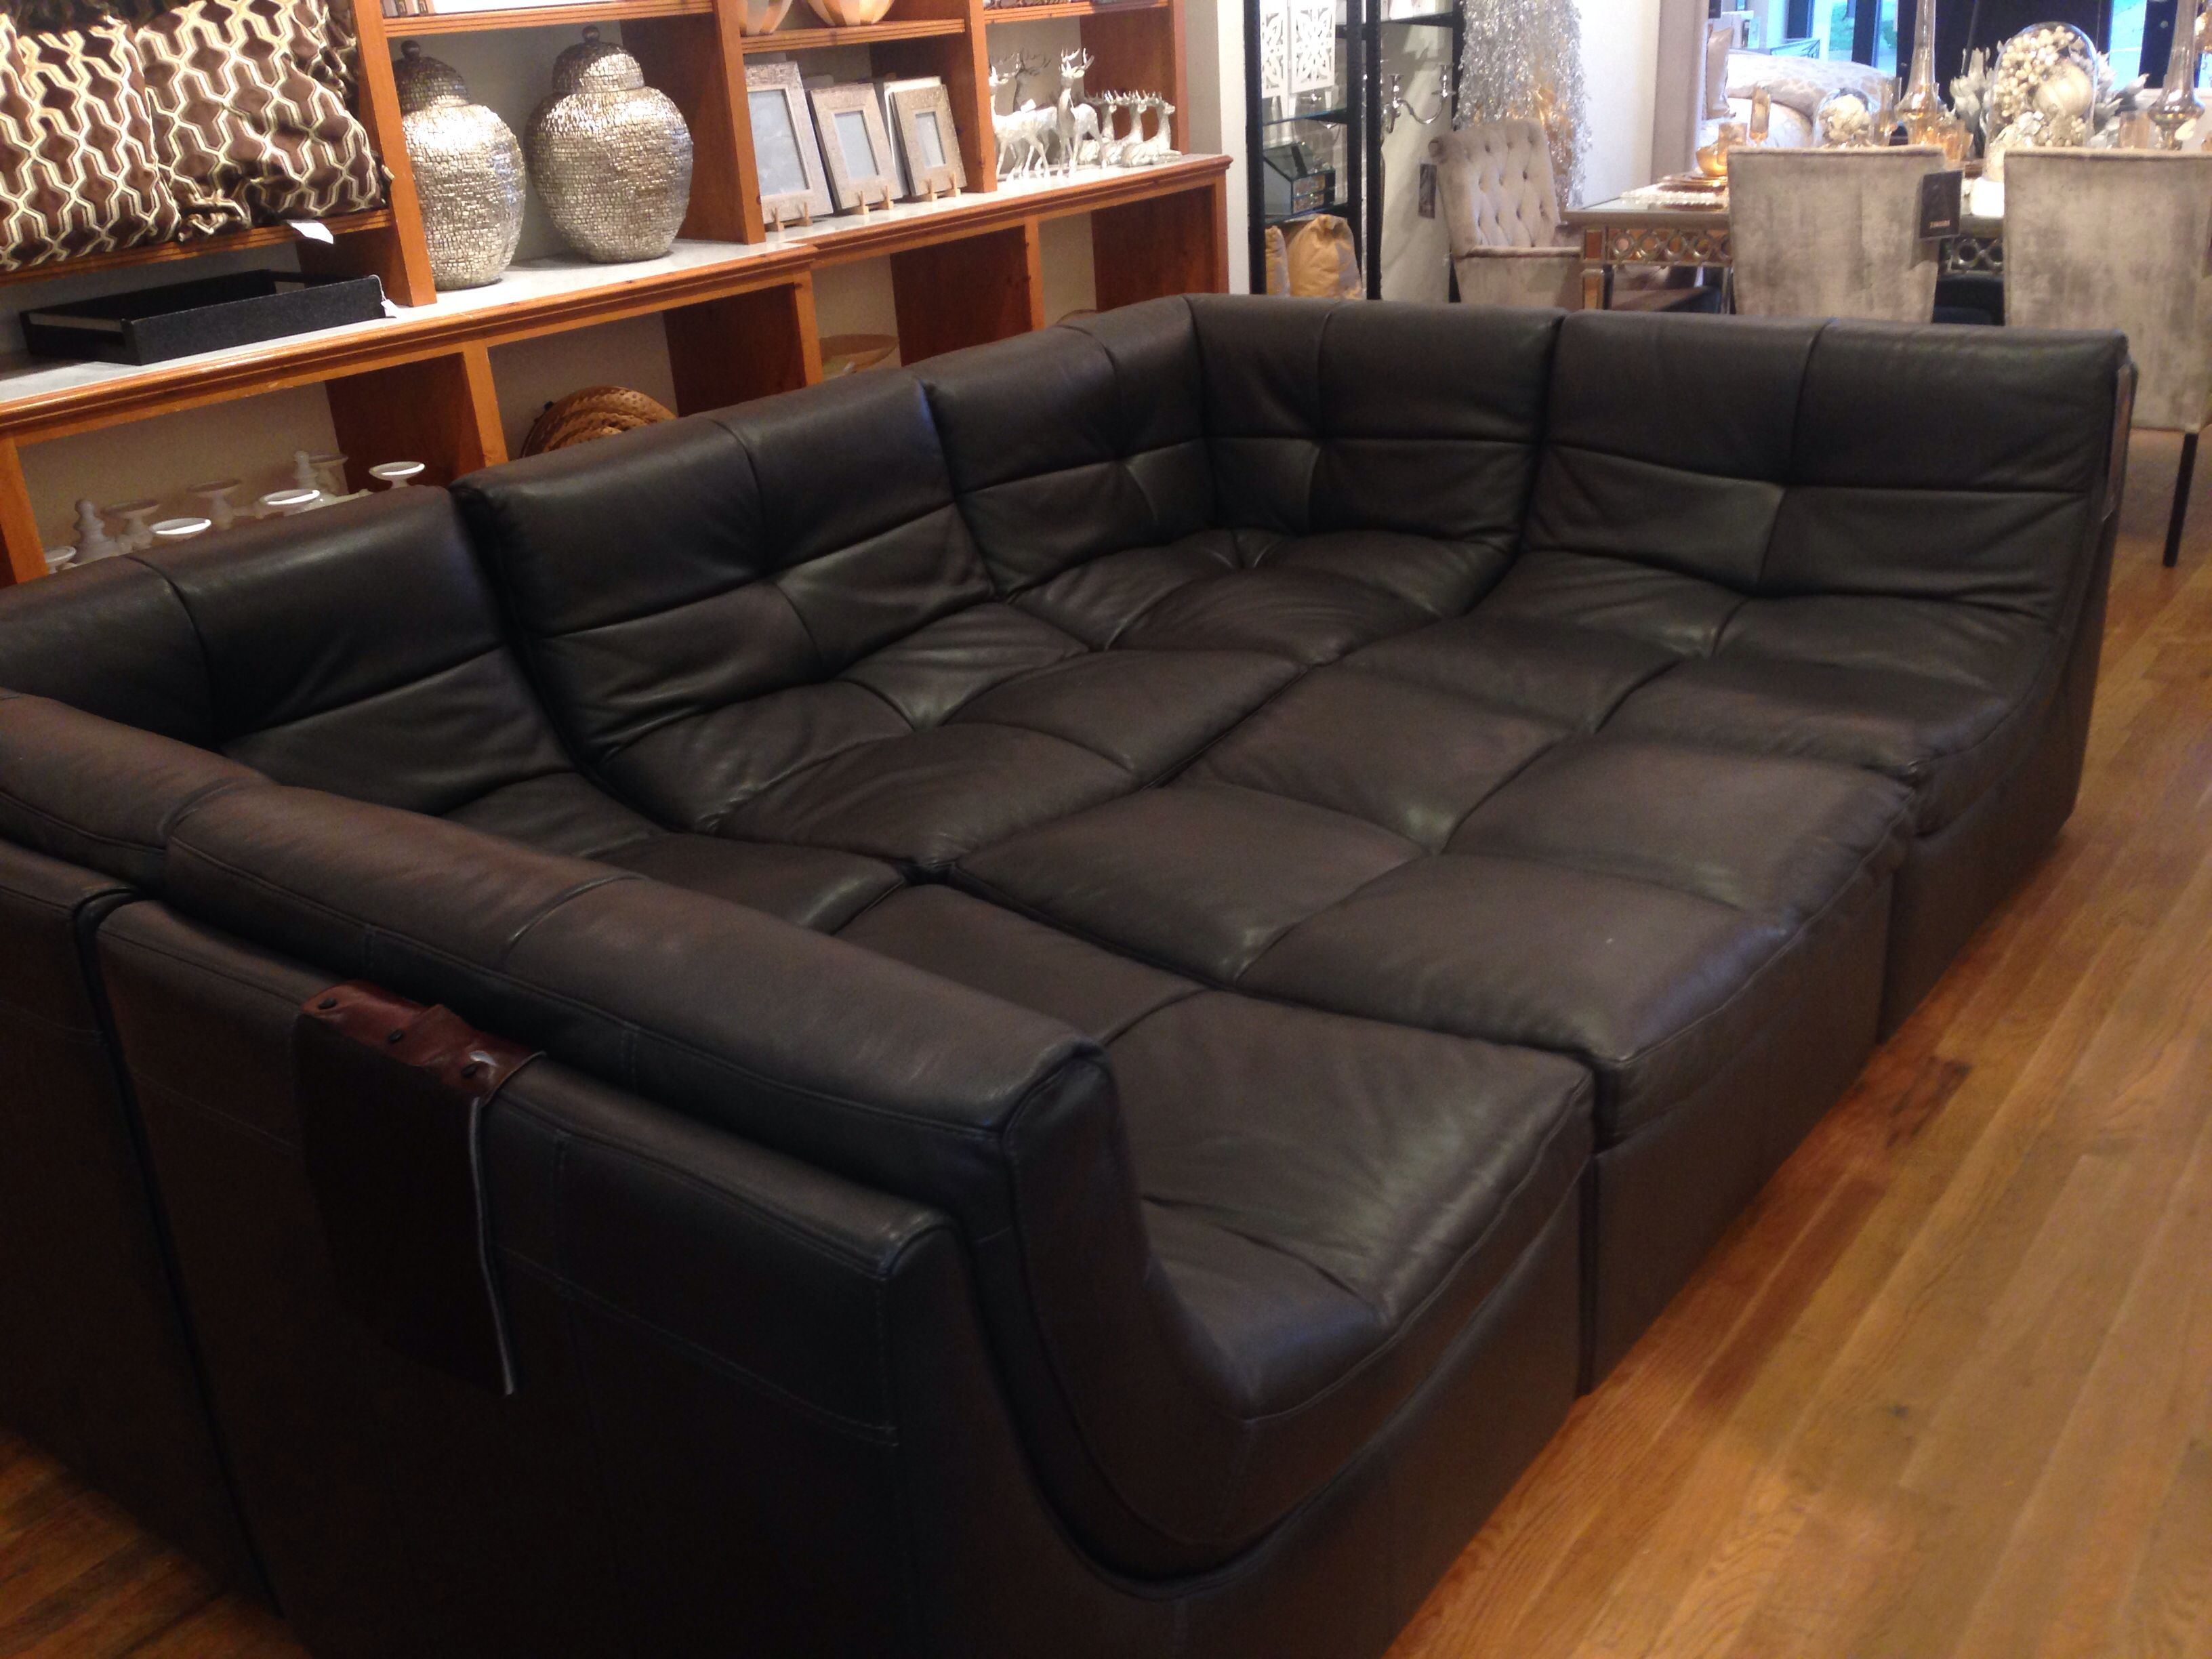 large couch for the home pinterest. Black Bedroom Furniture Sets. Home Design Ideas